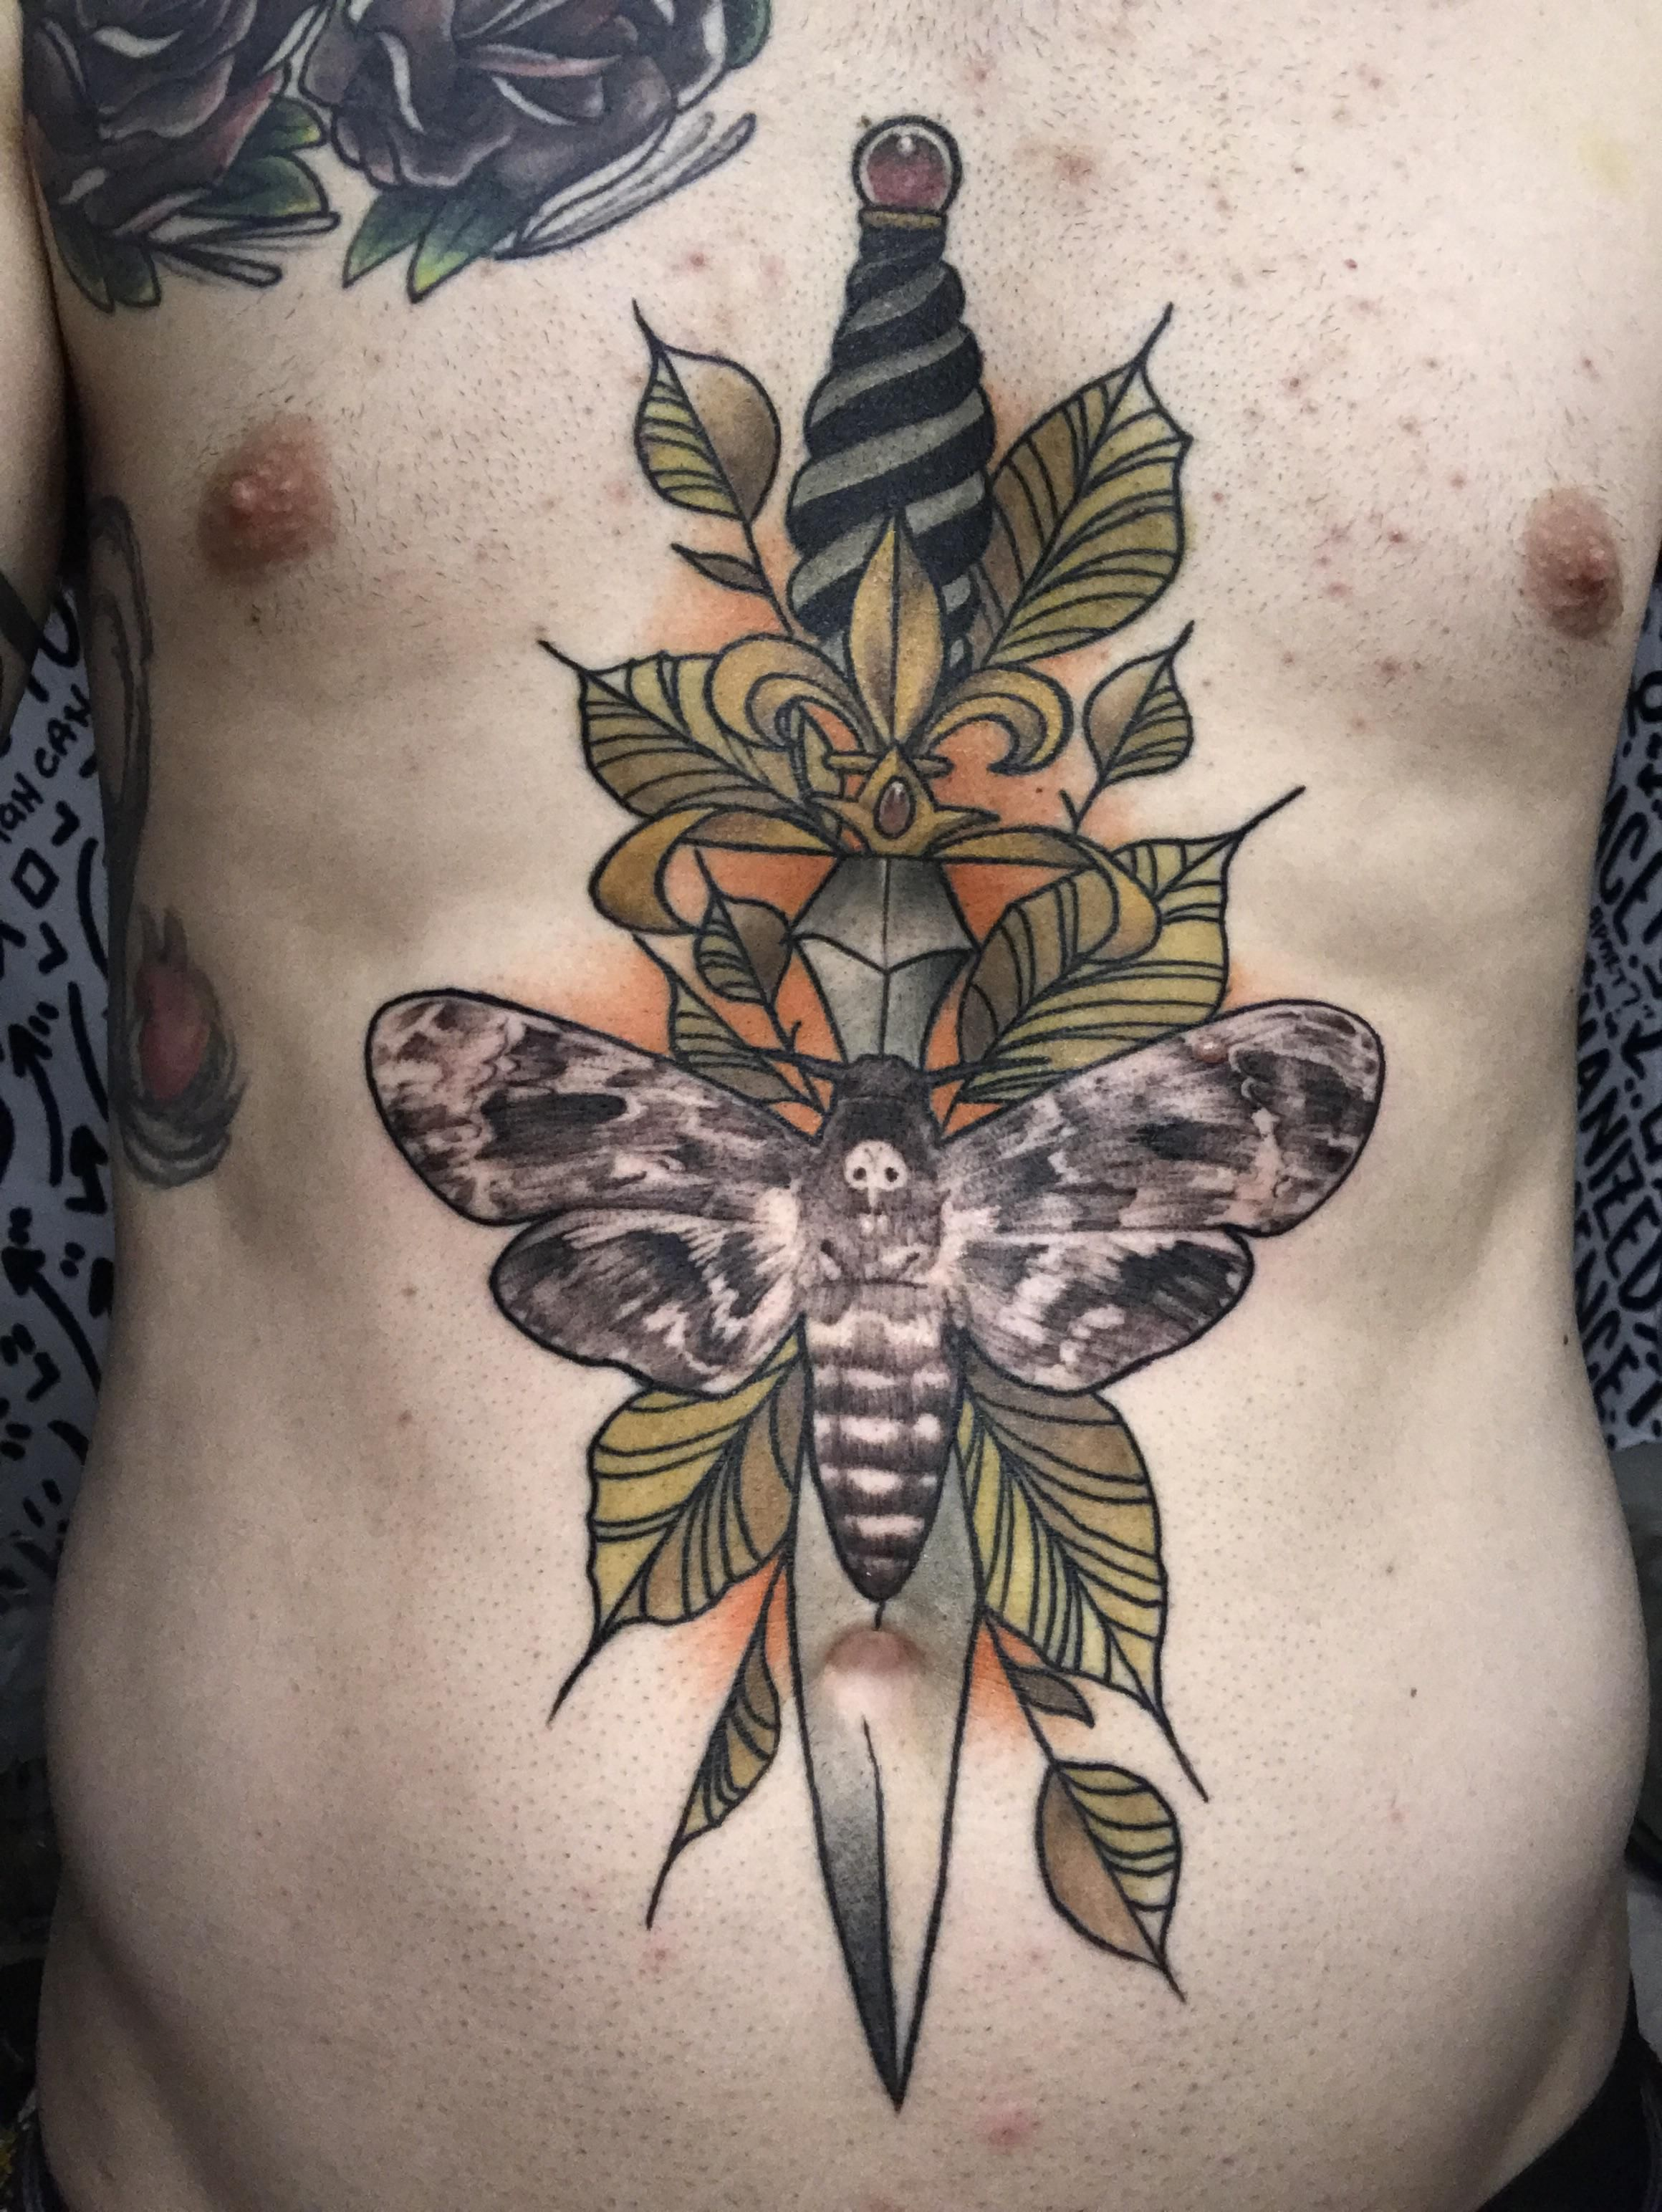 Deaths head moth by Keith Smith. Electric Chair tattoo